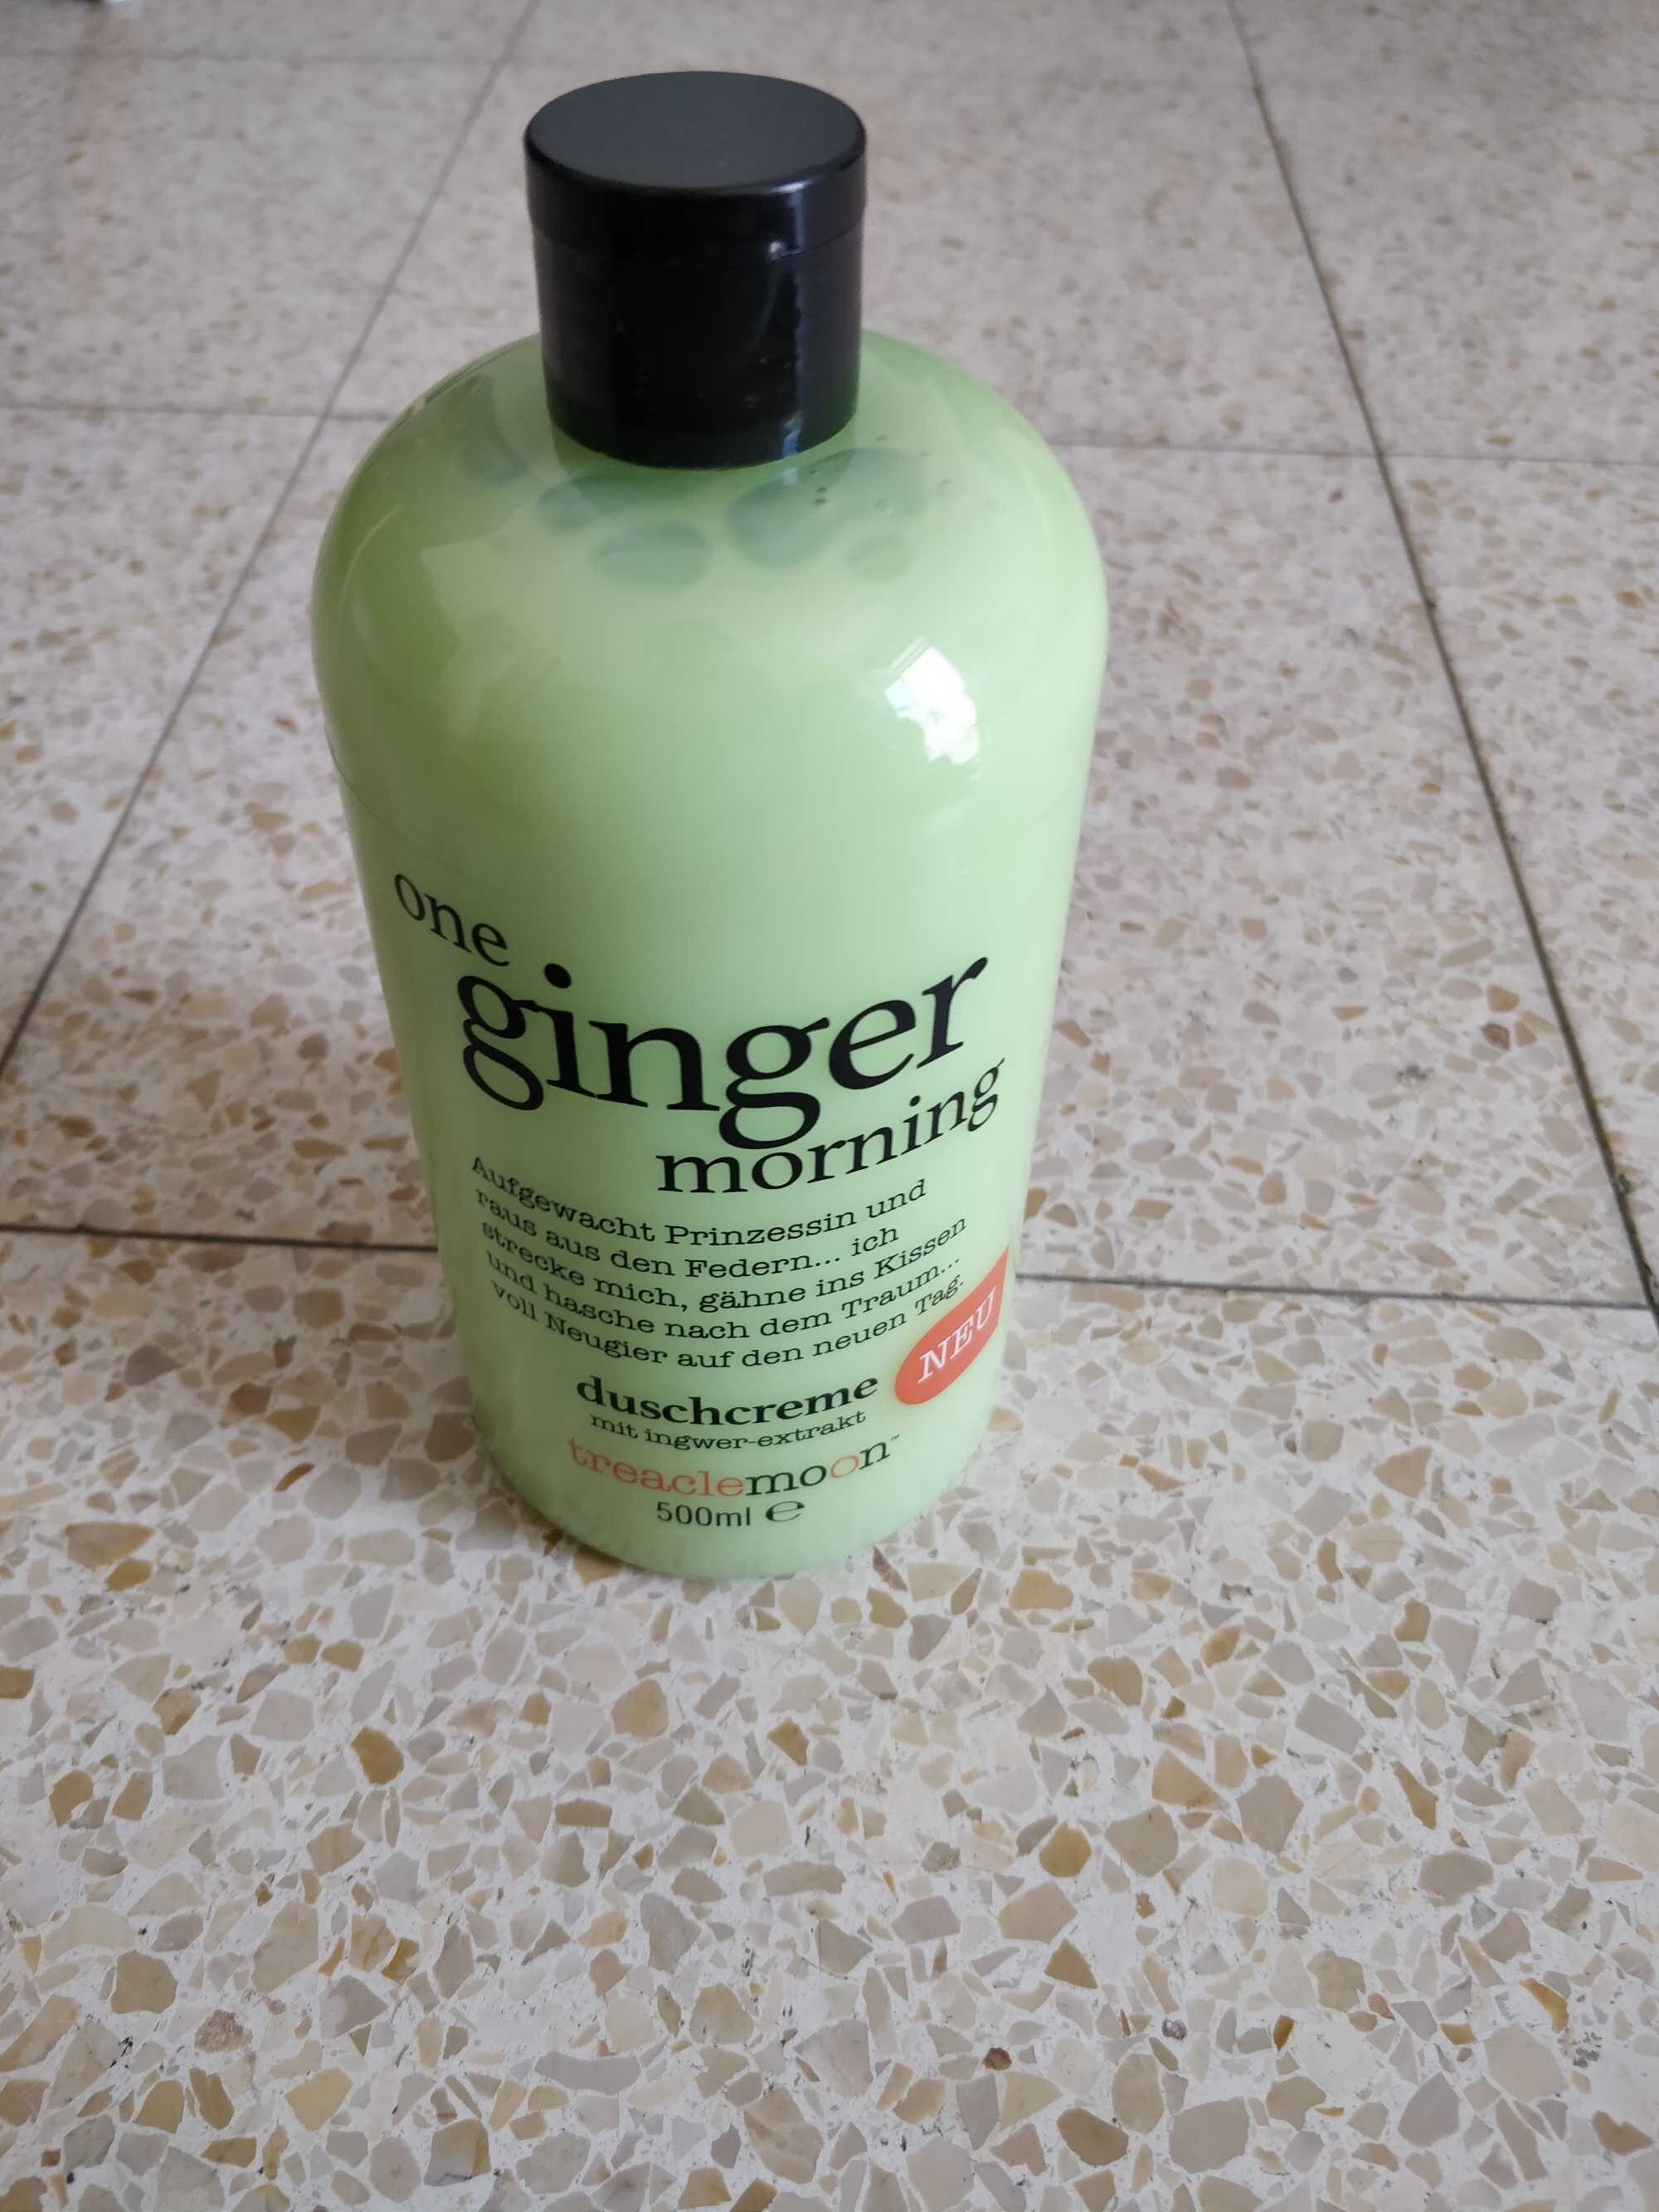 One ginger morning - Product